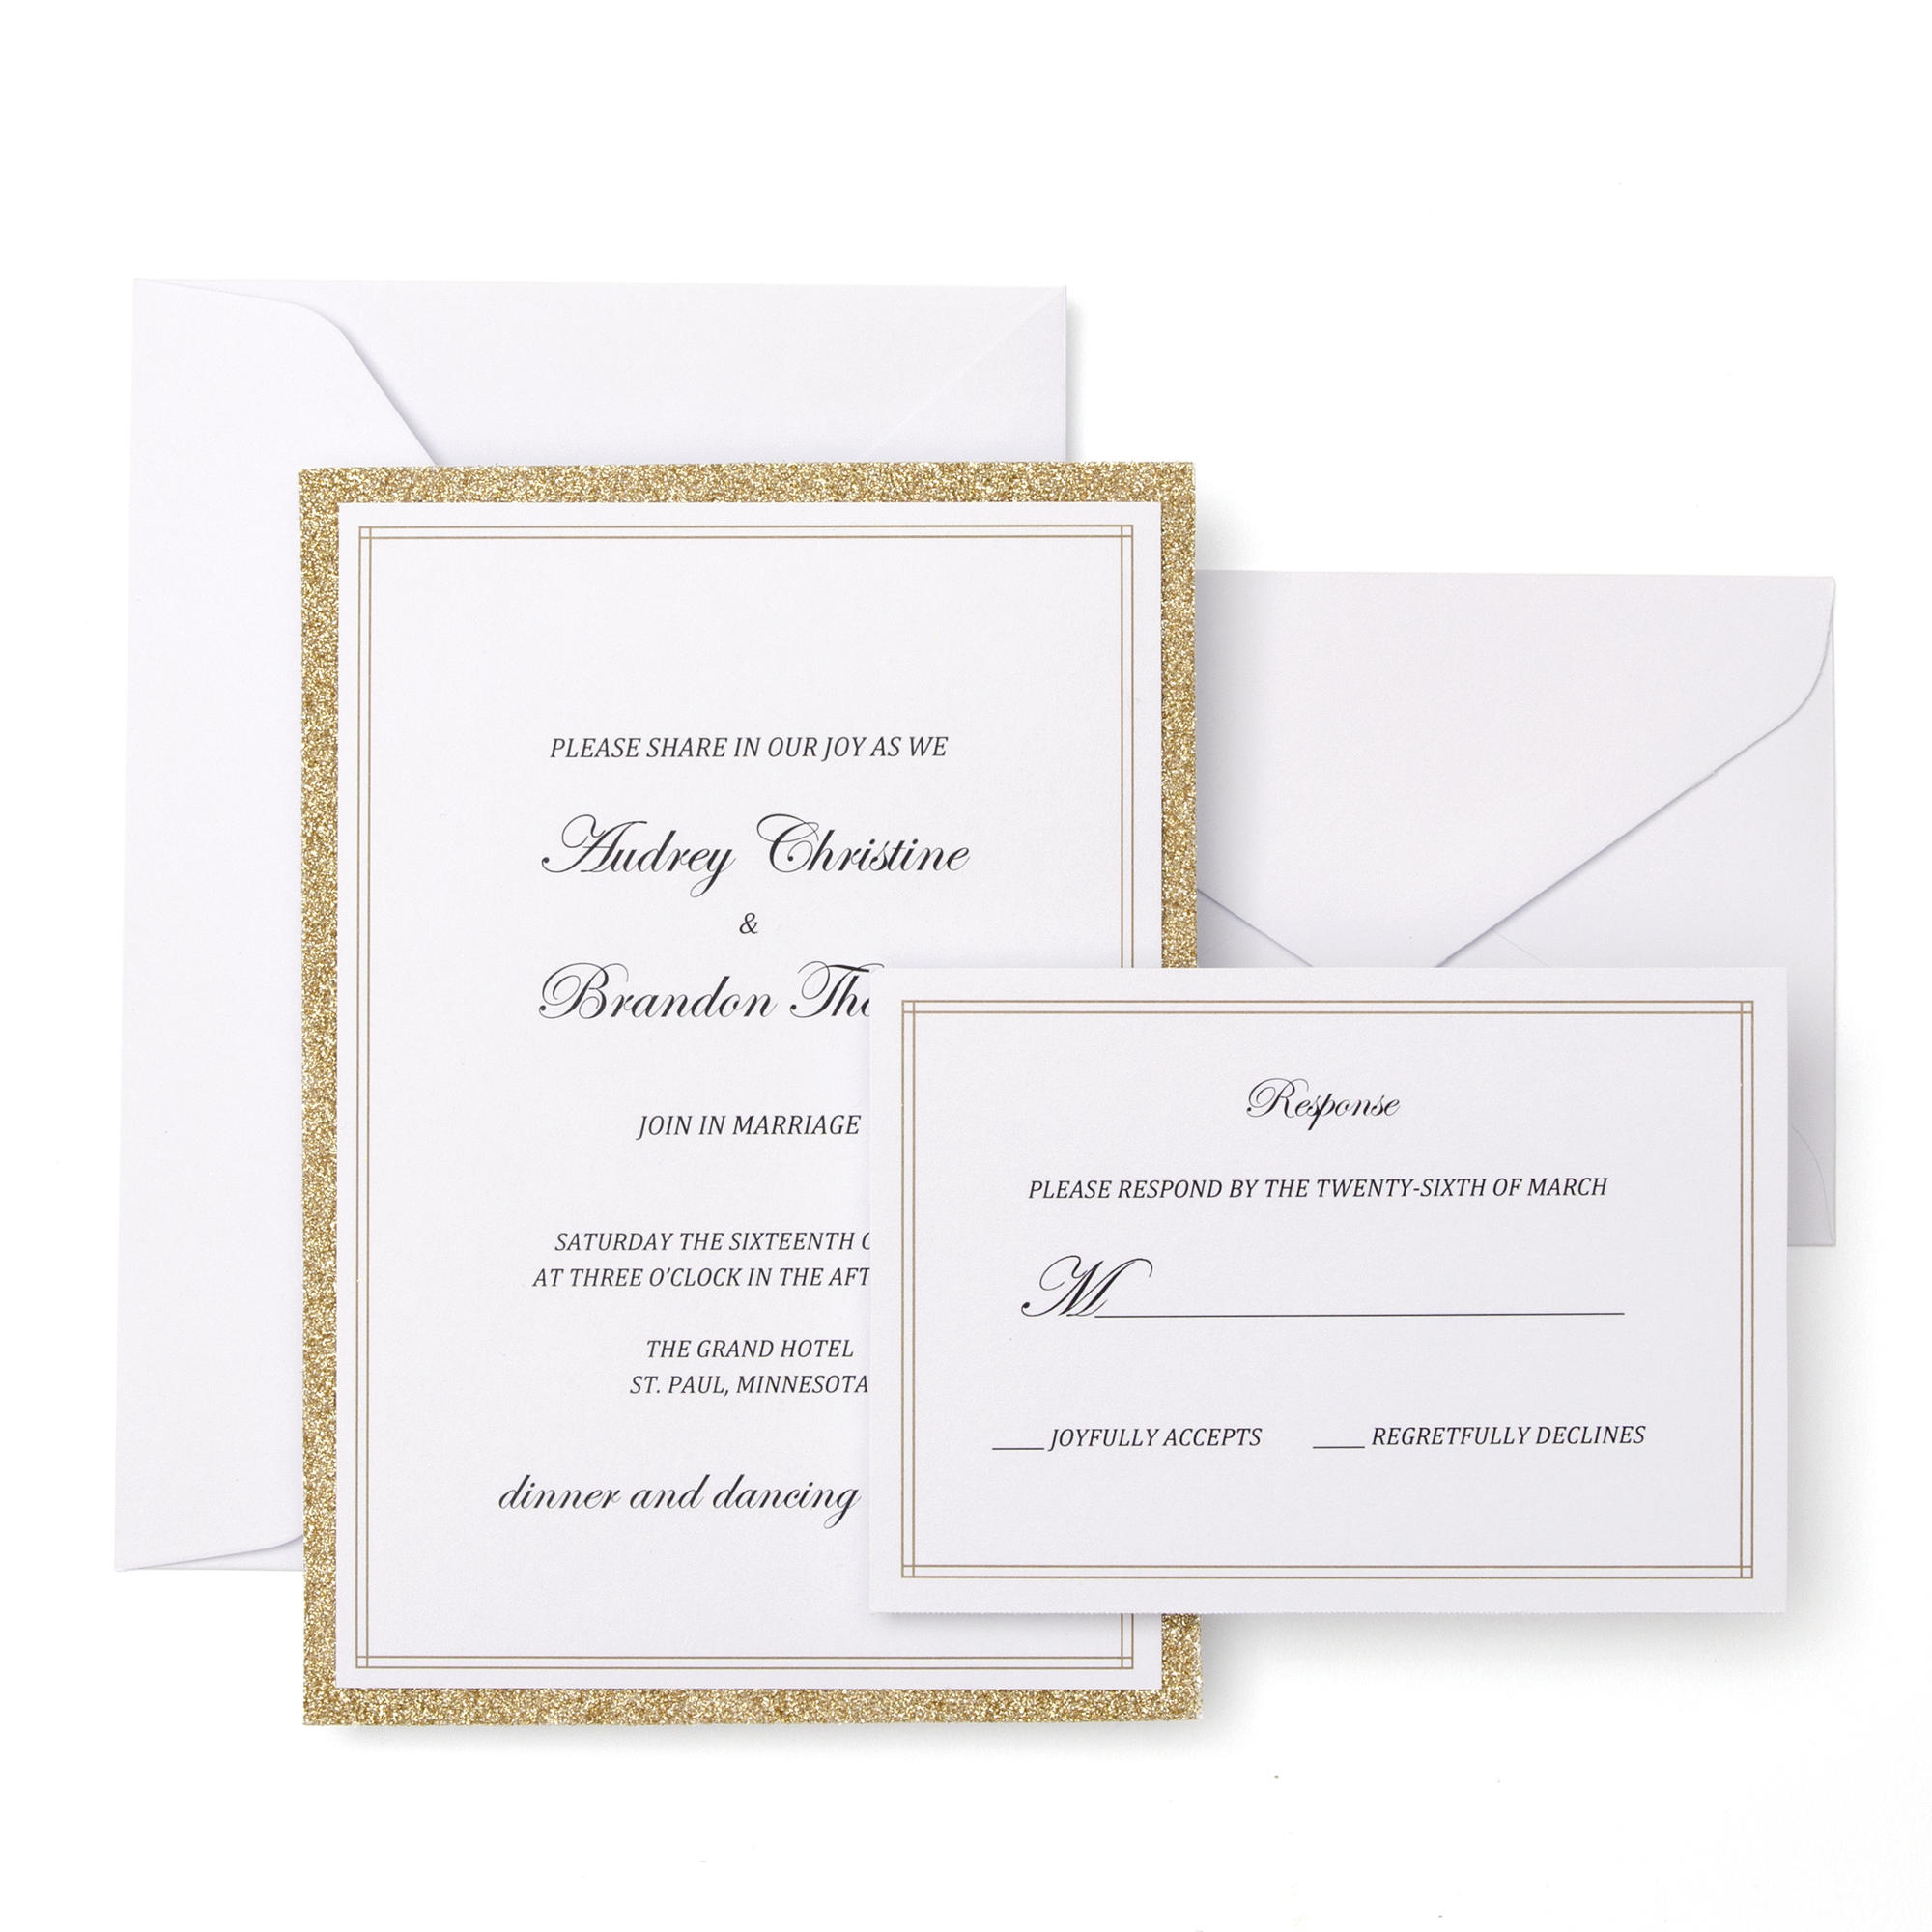 Gartner Studios Gold Glitter Invitation Kit